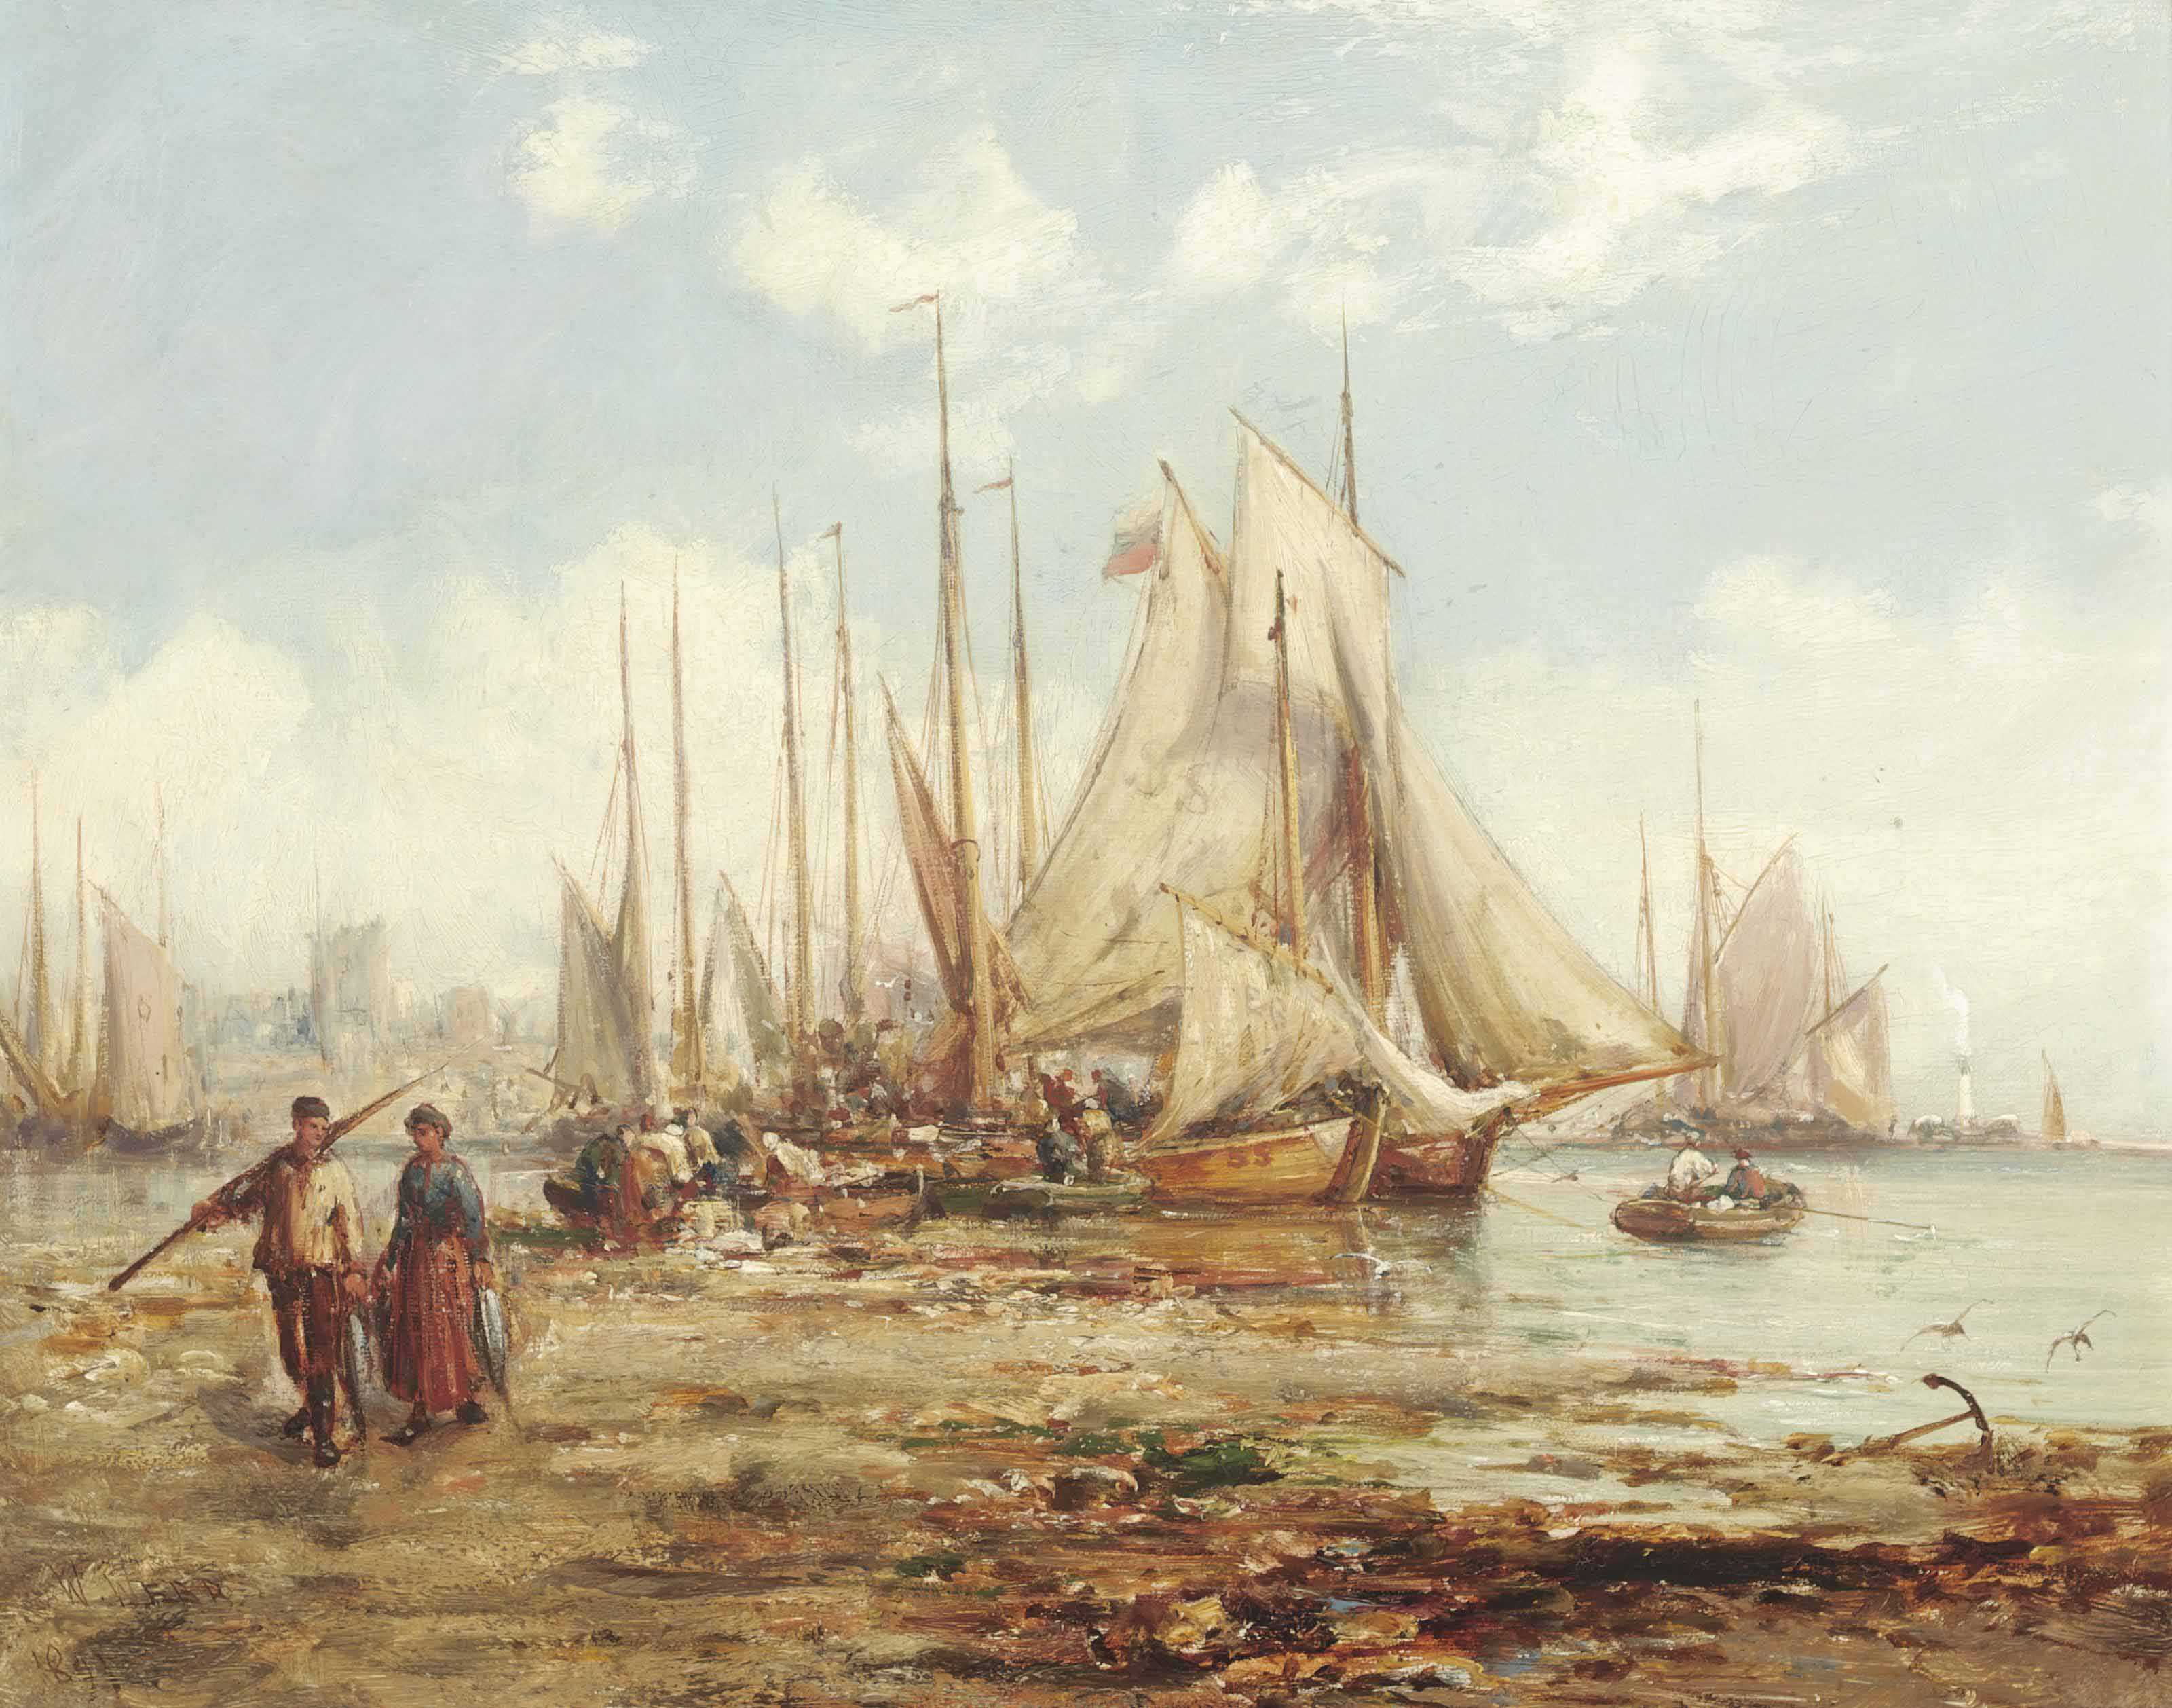 The St. Ives fishing fleet unloading their catch